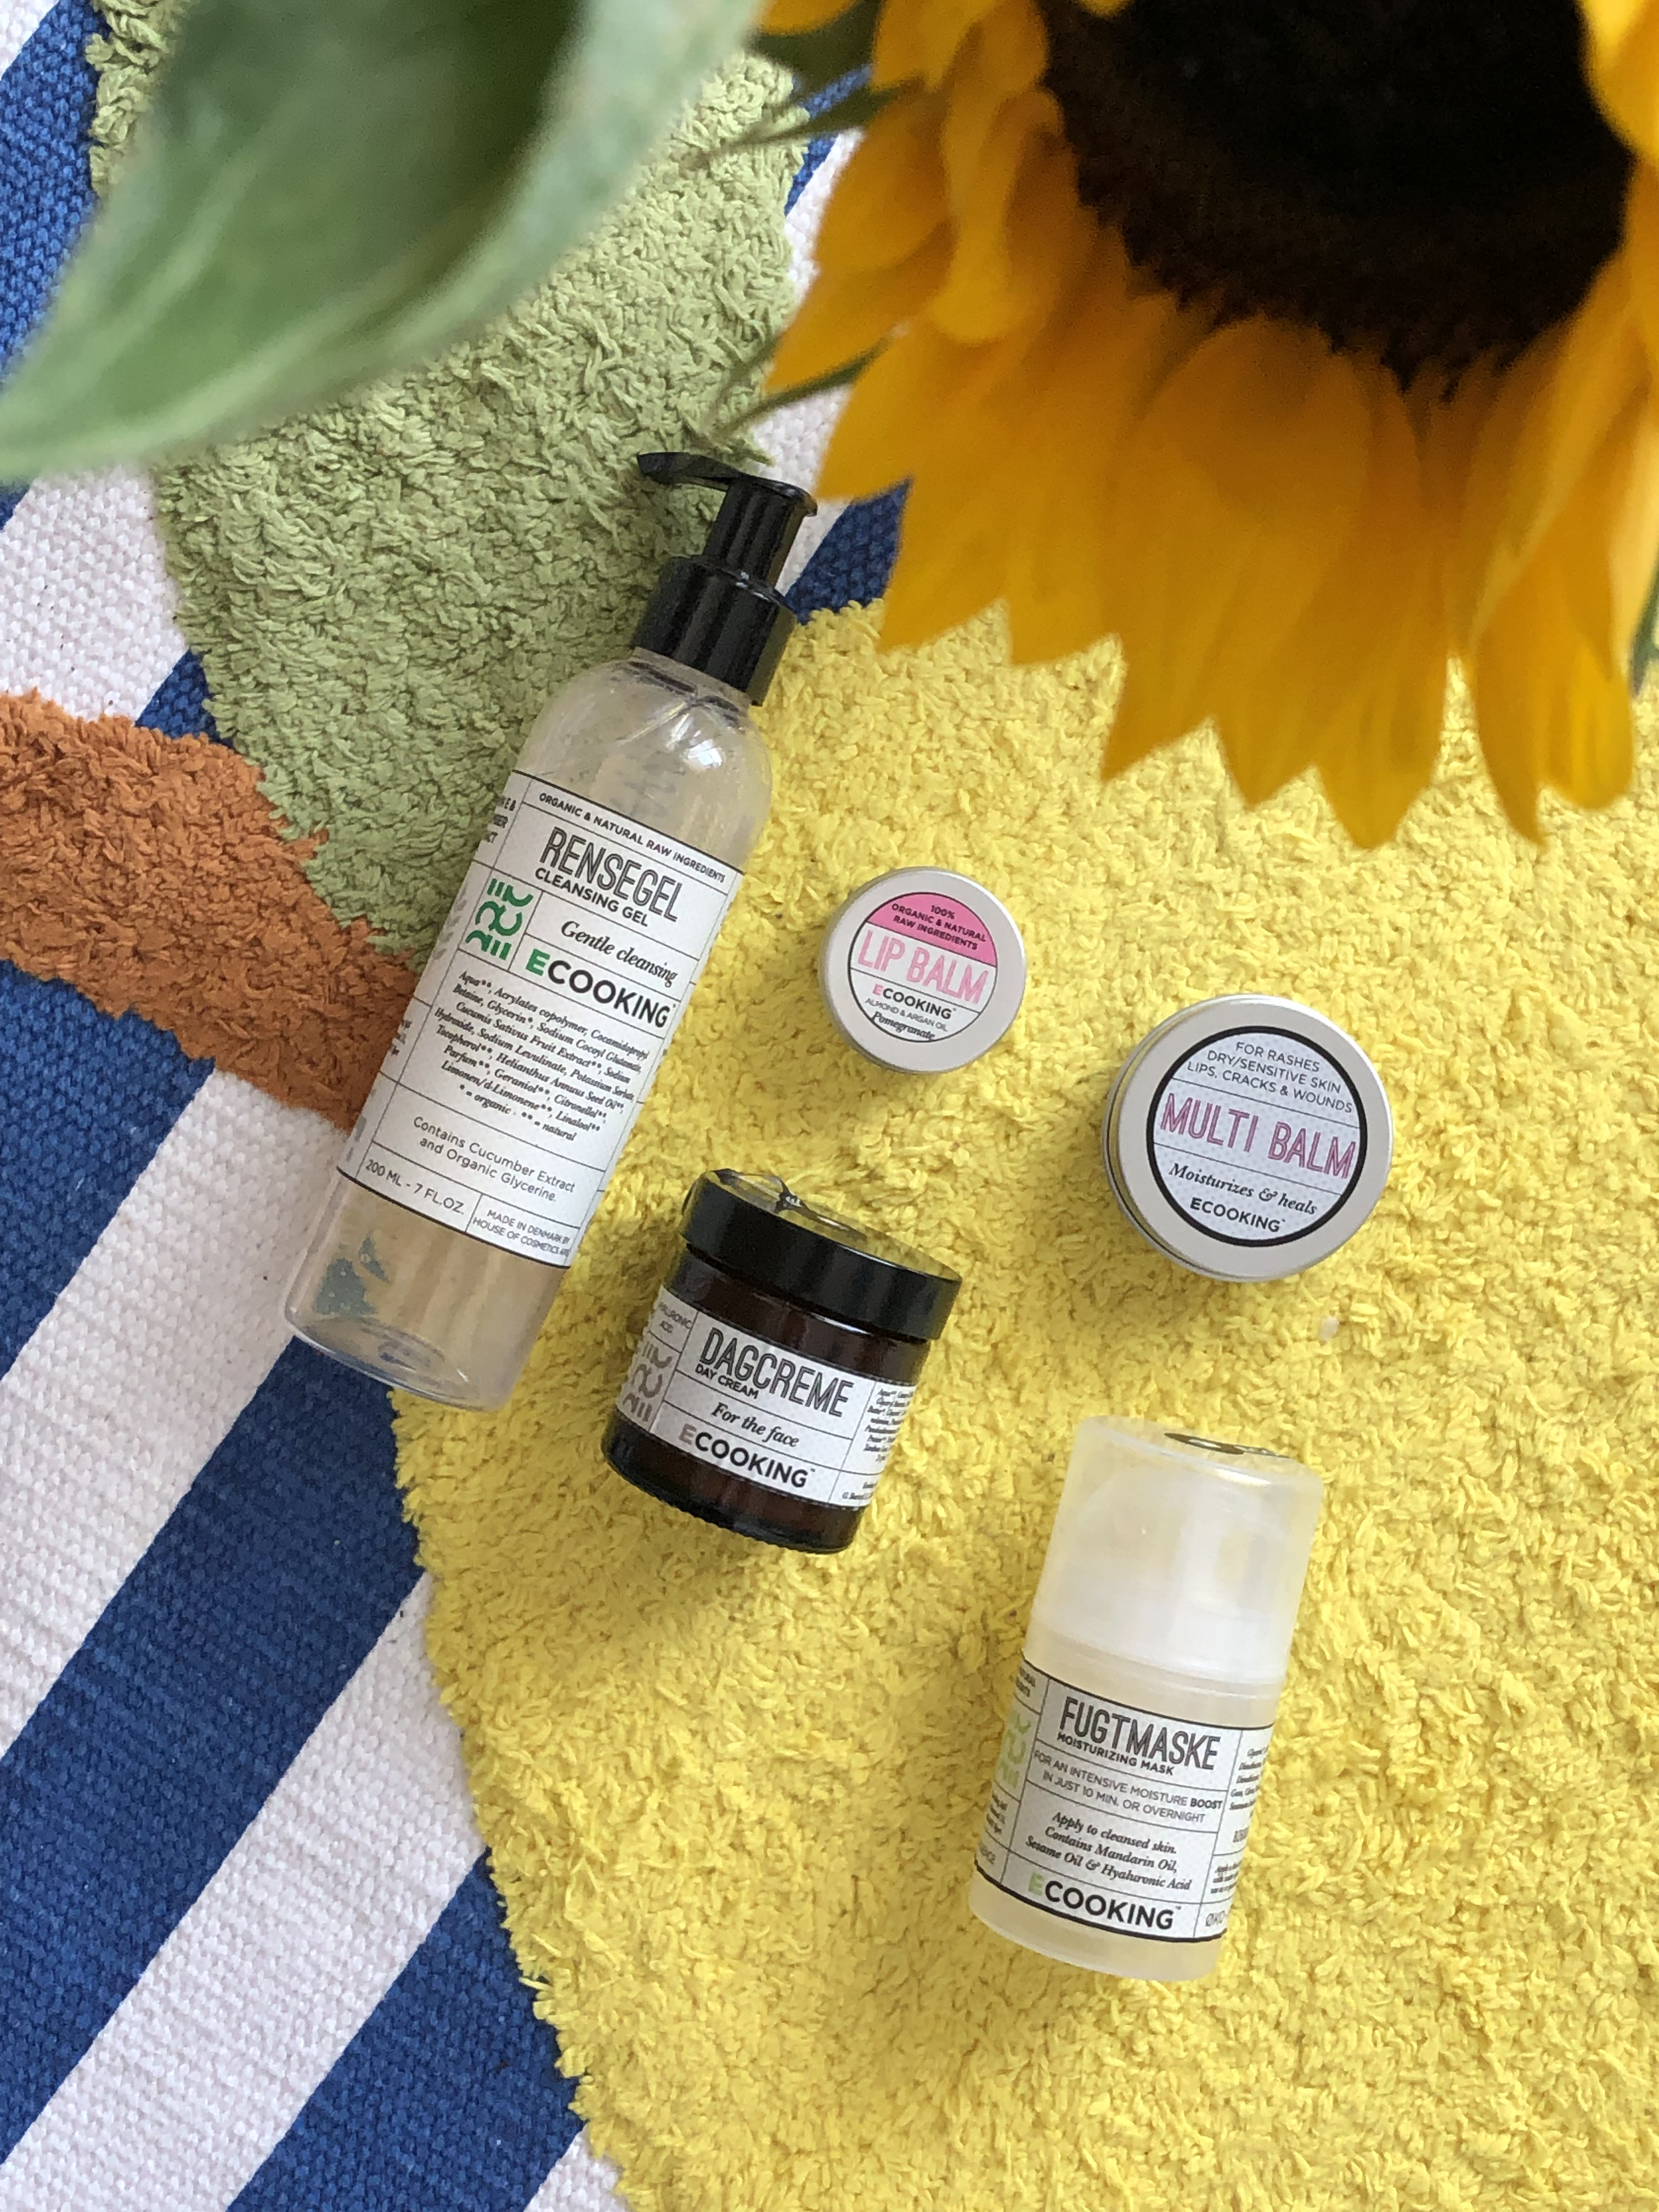 Ecooking Skincare products